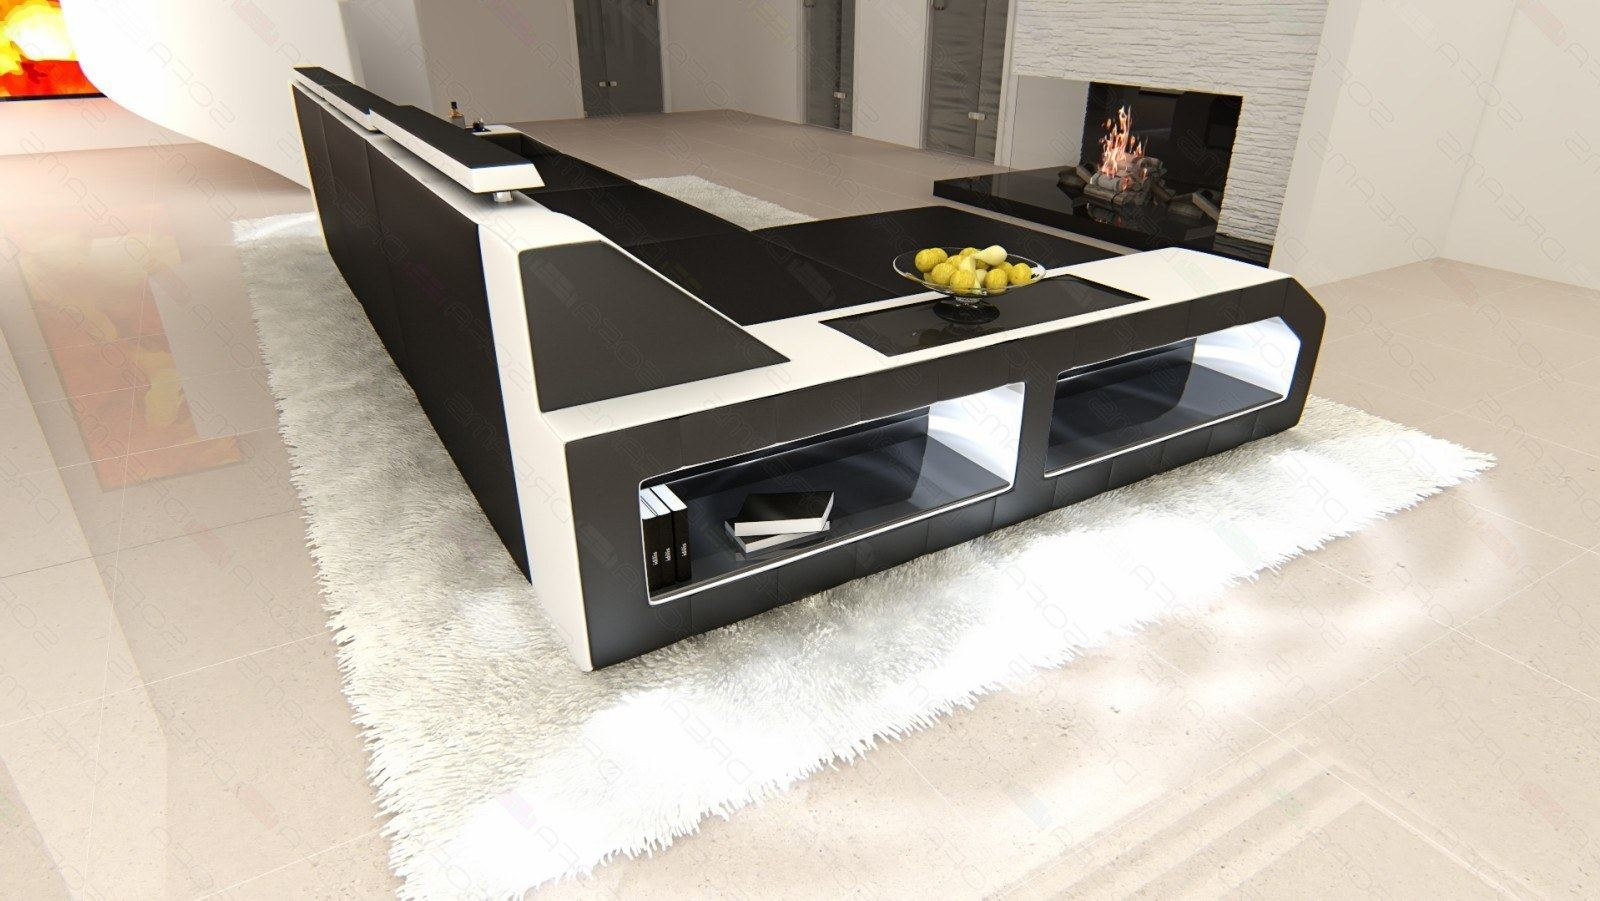 ledersofa arezzo l form eckcouch mit beleuchtung schwarz weiss ebay. Black Bedroom Furniture Sets. Home Design Ideas